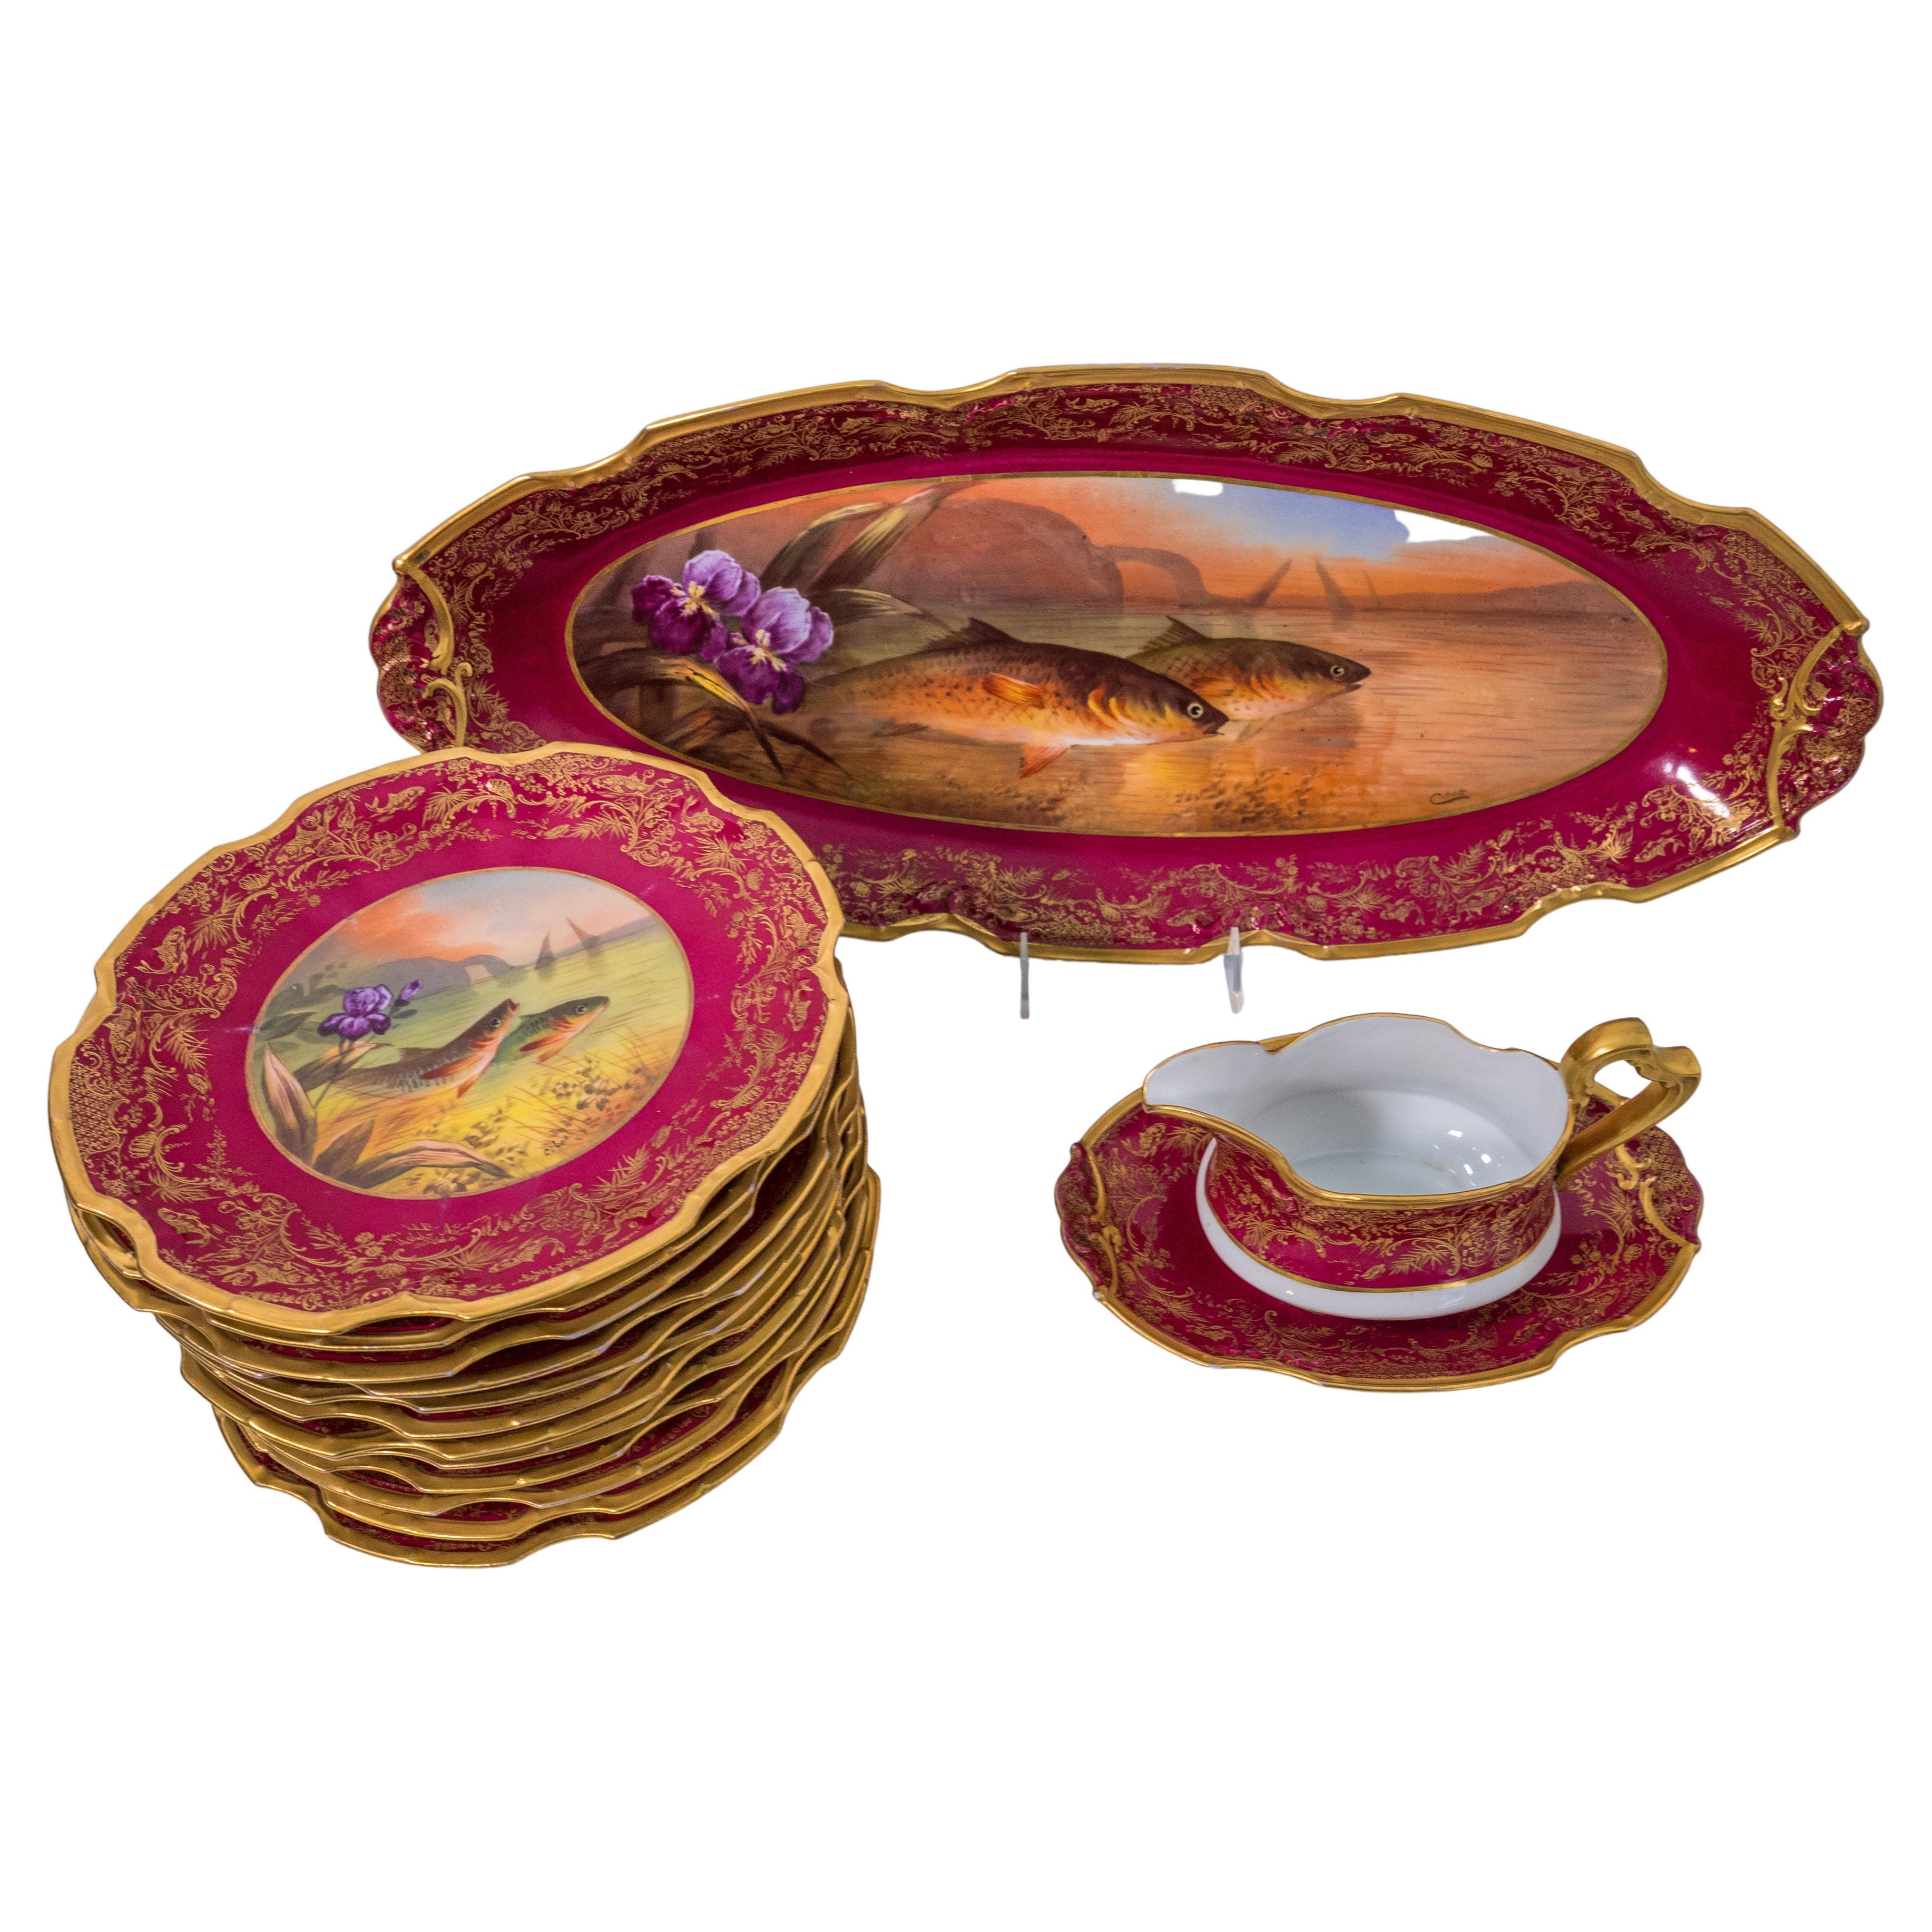 15 Piece Fish Set with Platter, Sauce Boat & 12 Plates, Antique Limoges Ruby